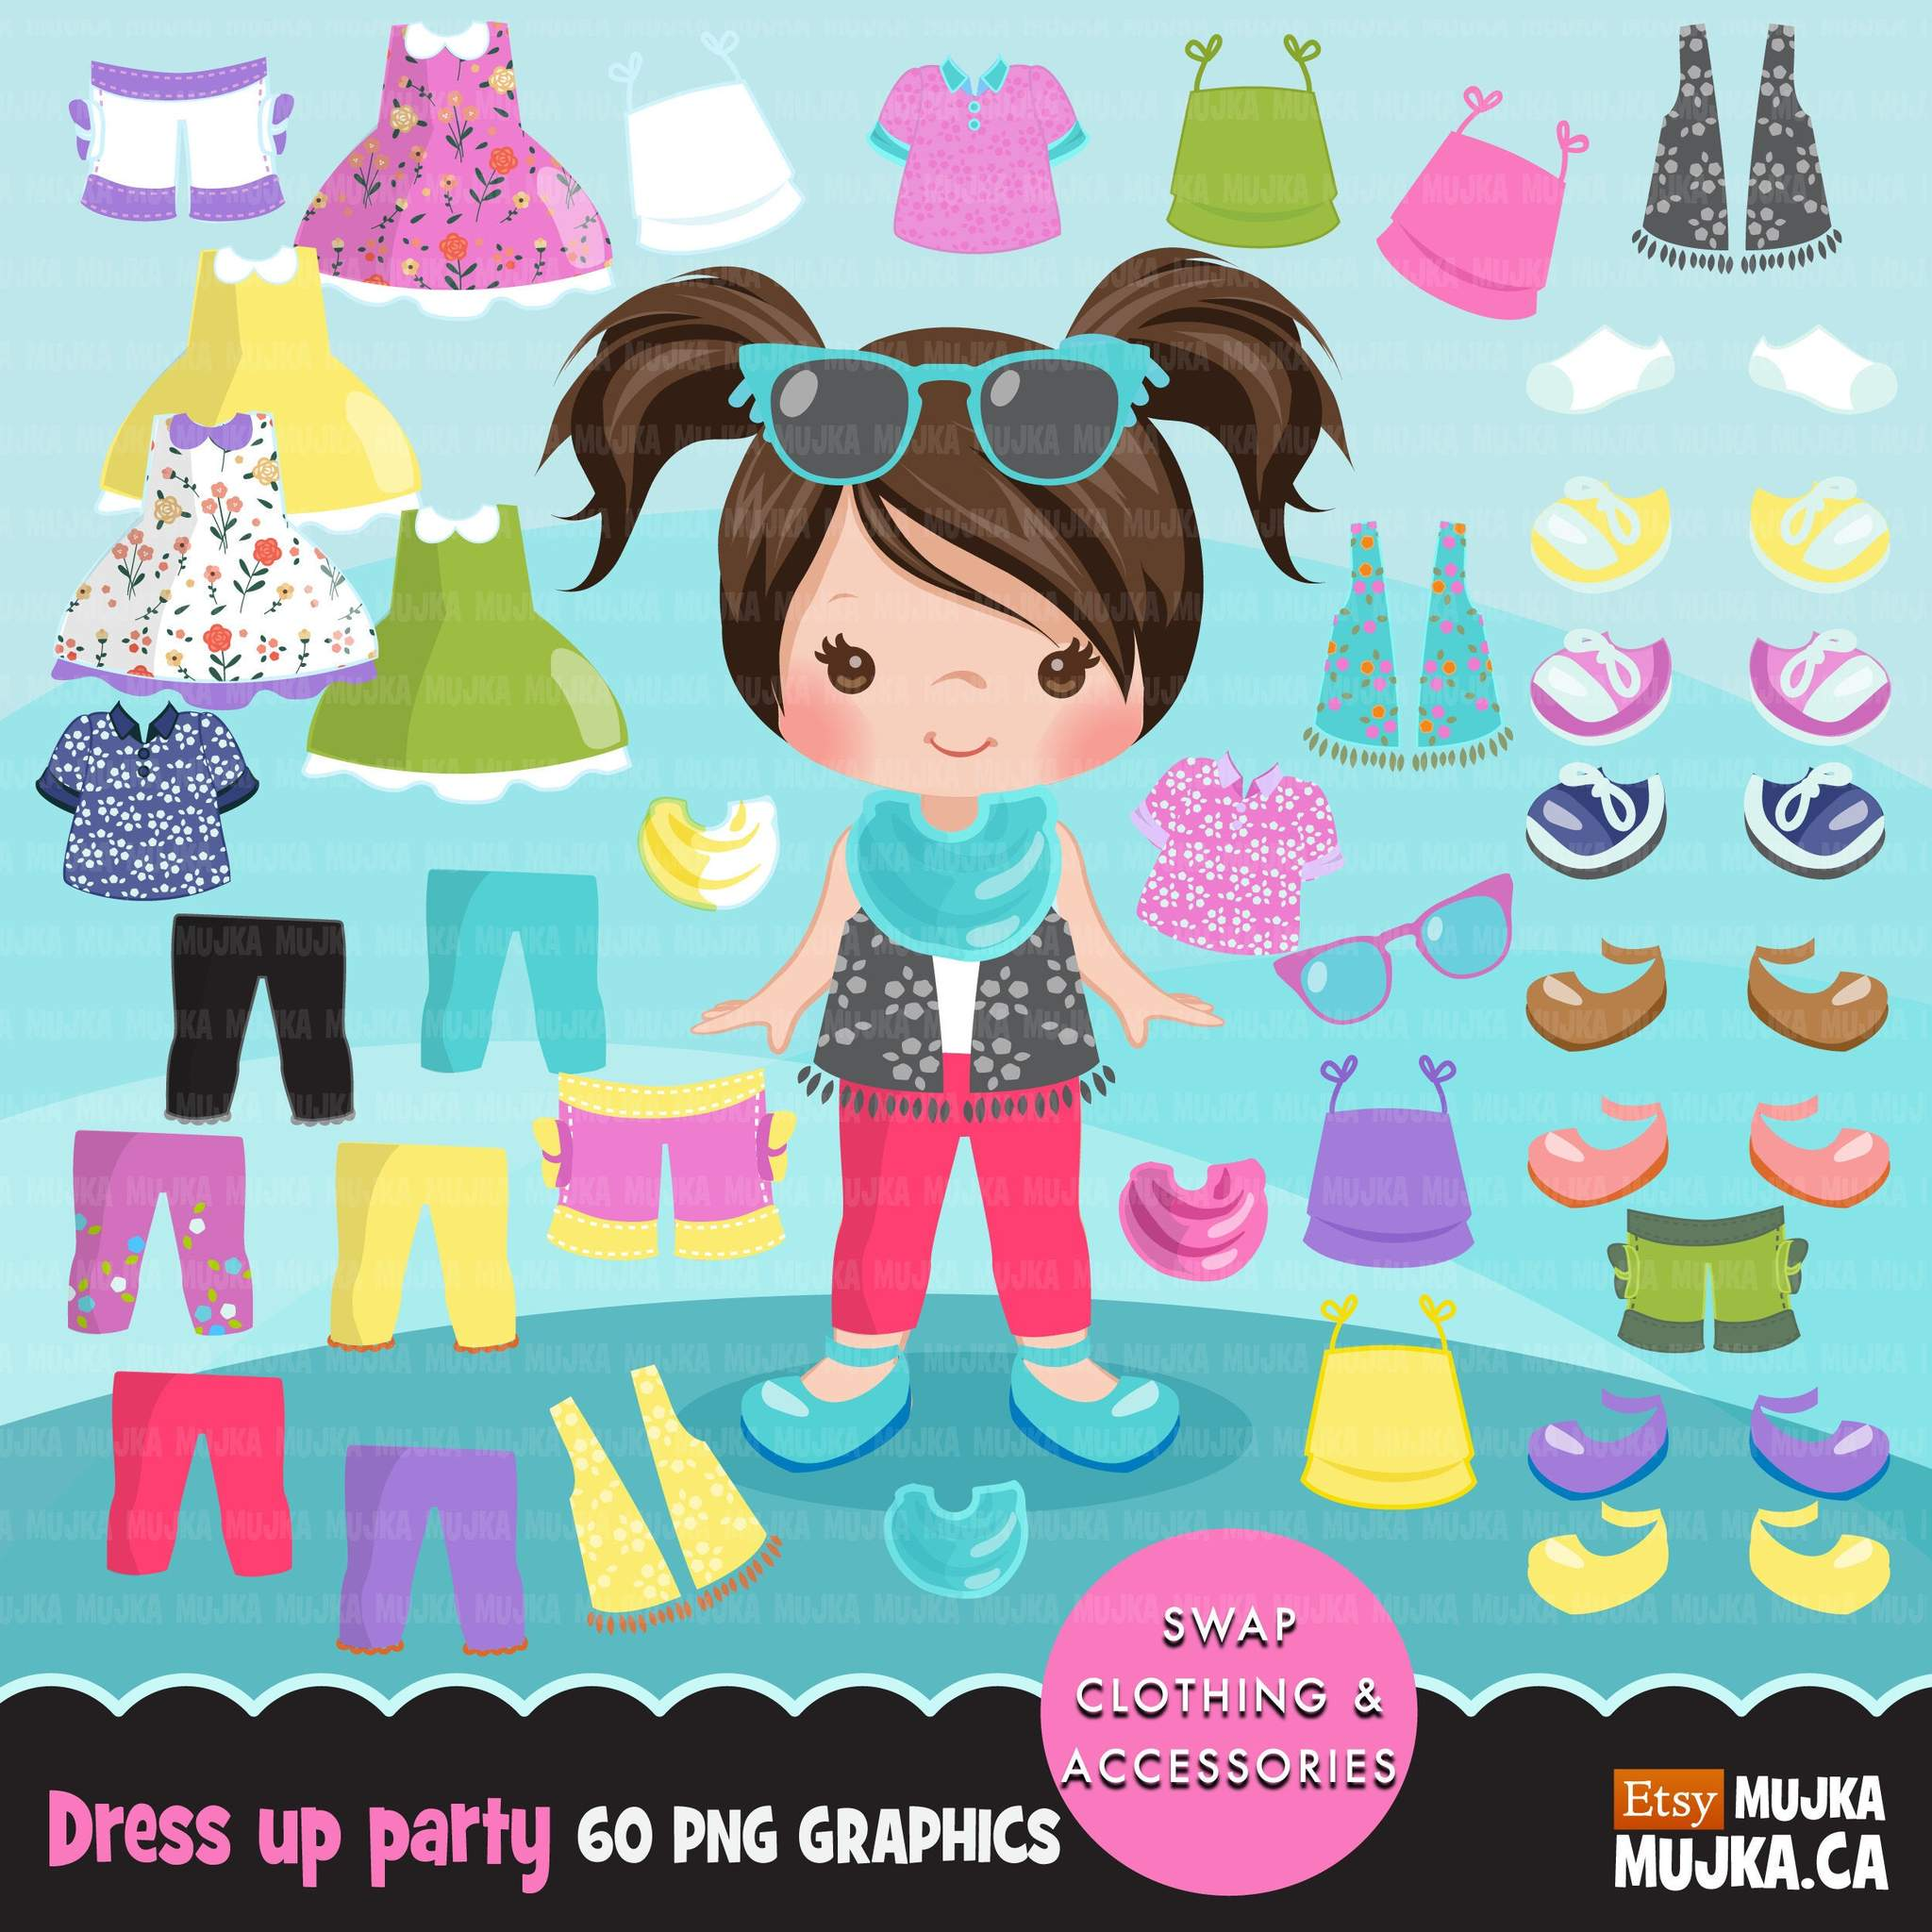 Dress up girl clipart graphic free download Paper doll clipart, Little Girls Dressing Party Graphics. Cute Characters,  summer graphic free download